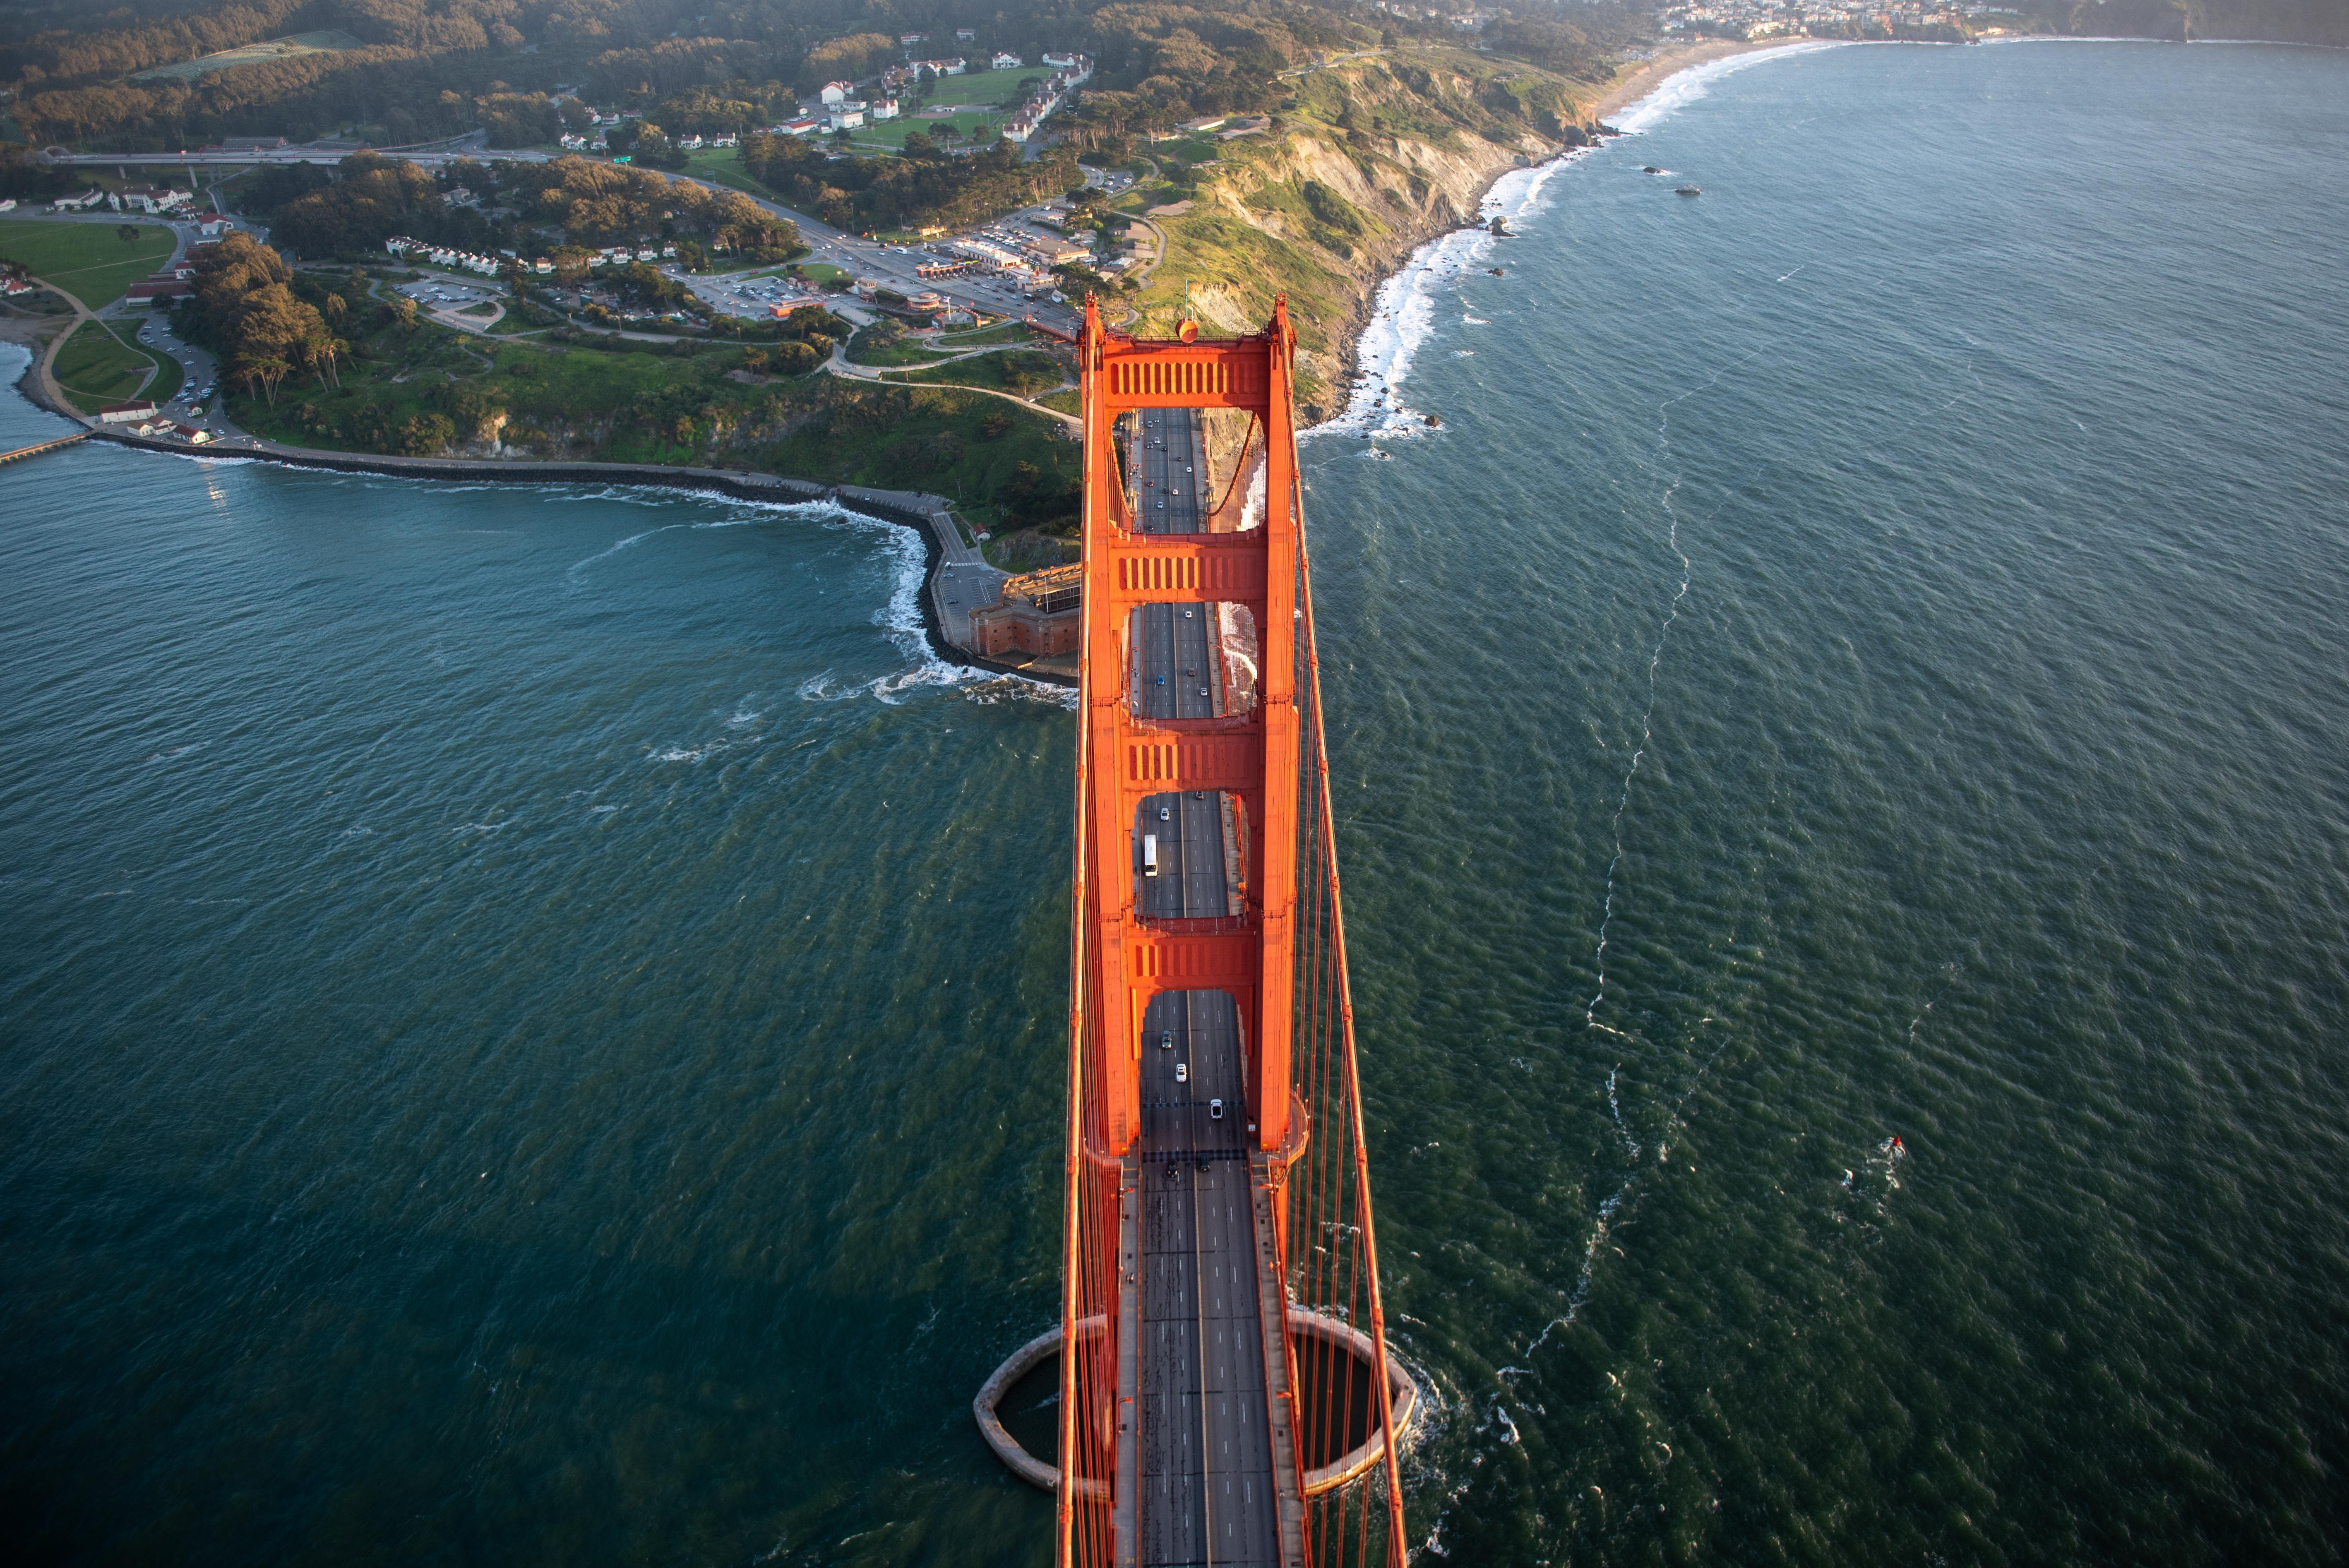 How to Spend 1 Day in San Francisco